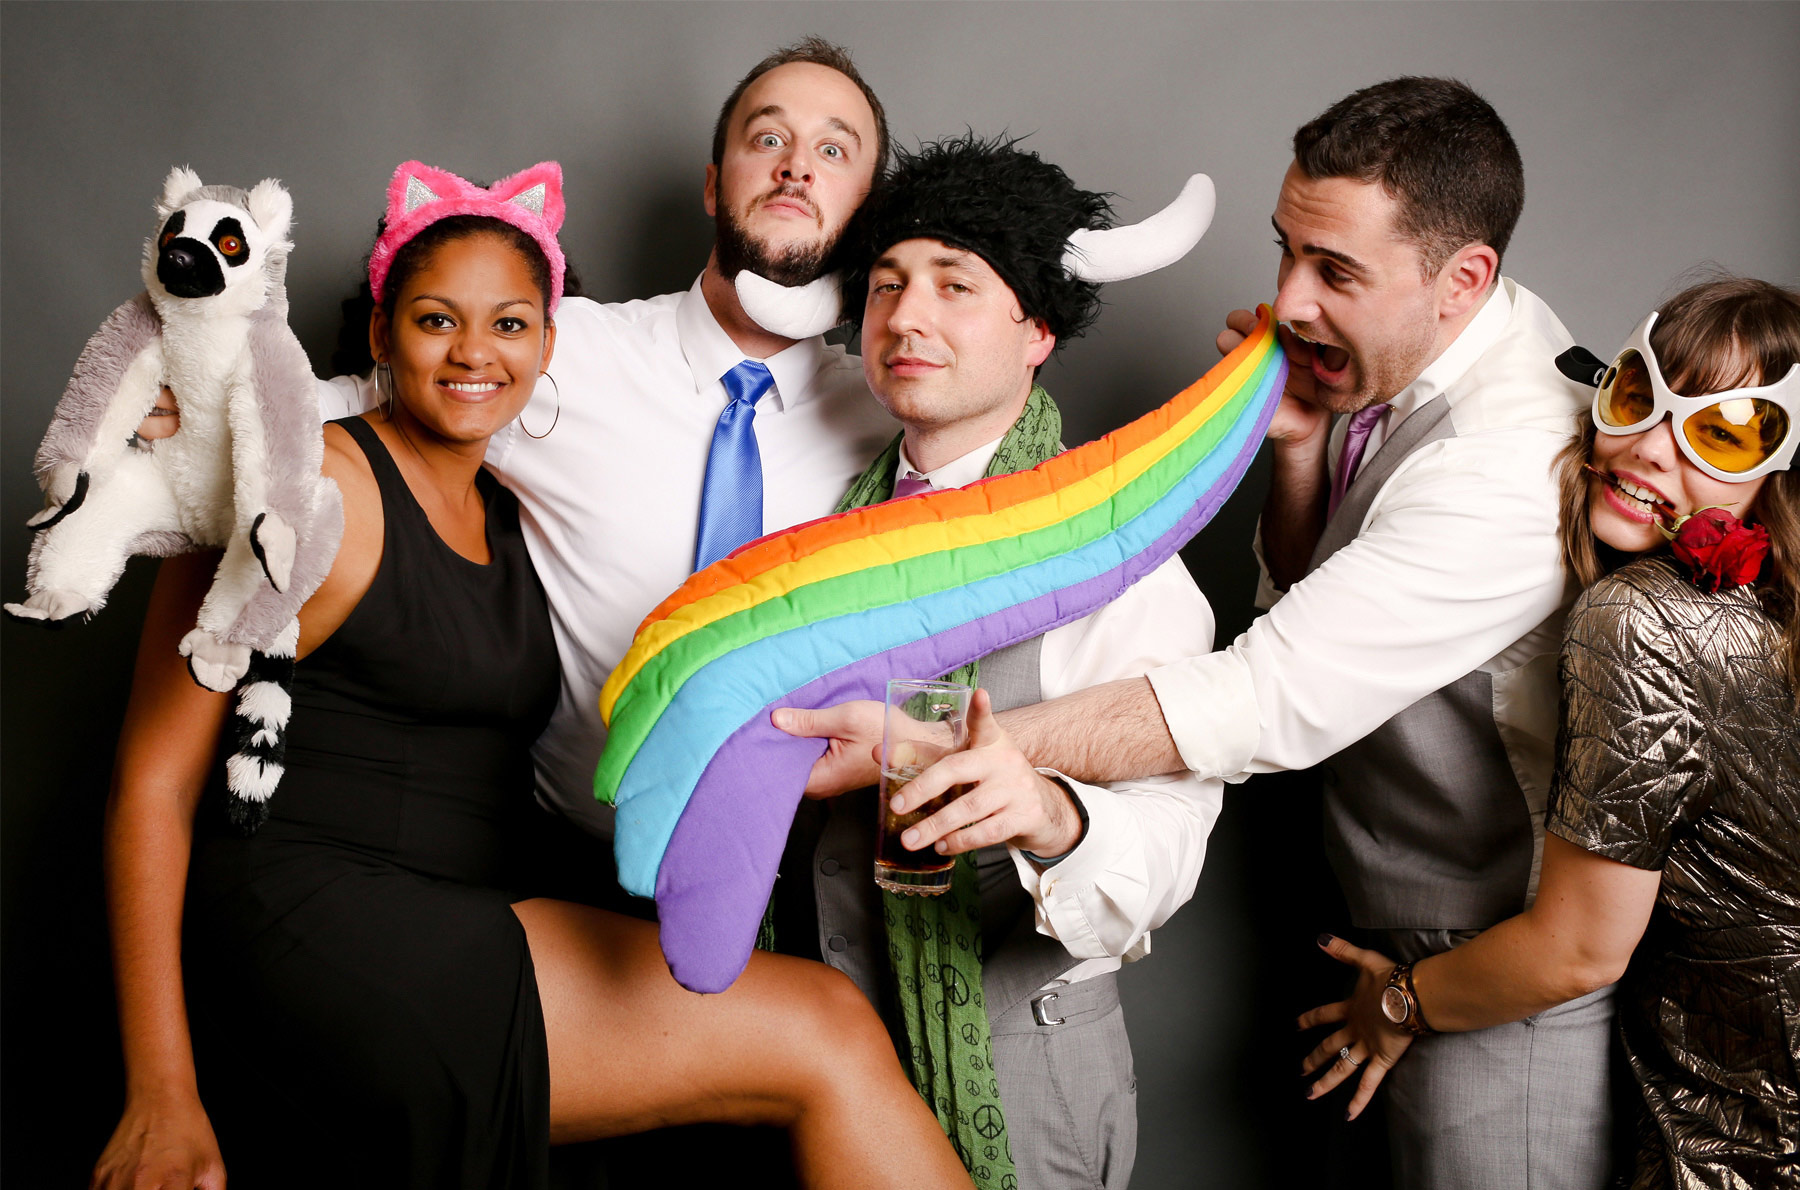 08-Minneapolis-Minnesota-Wedding-Photography-by-Vick-Photography-Crazy-Cam-Reception-Lafayette-Country-Club-Dance.jpg